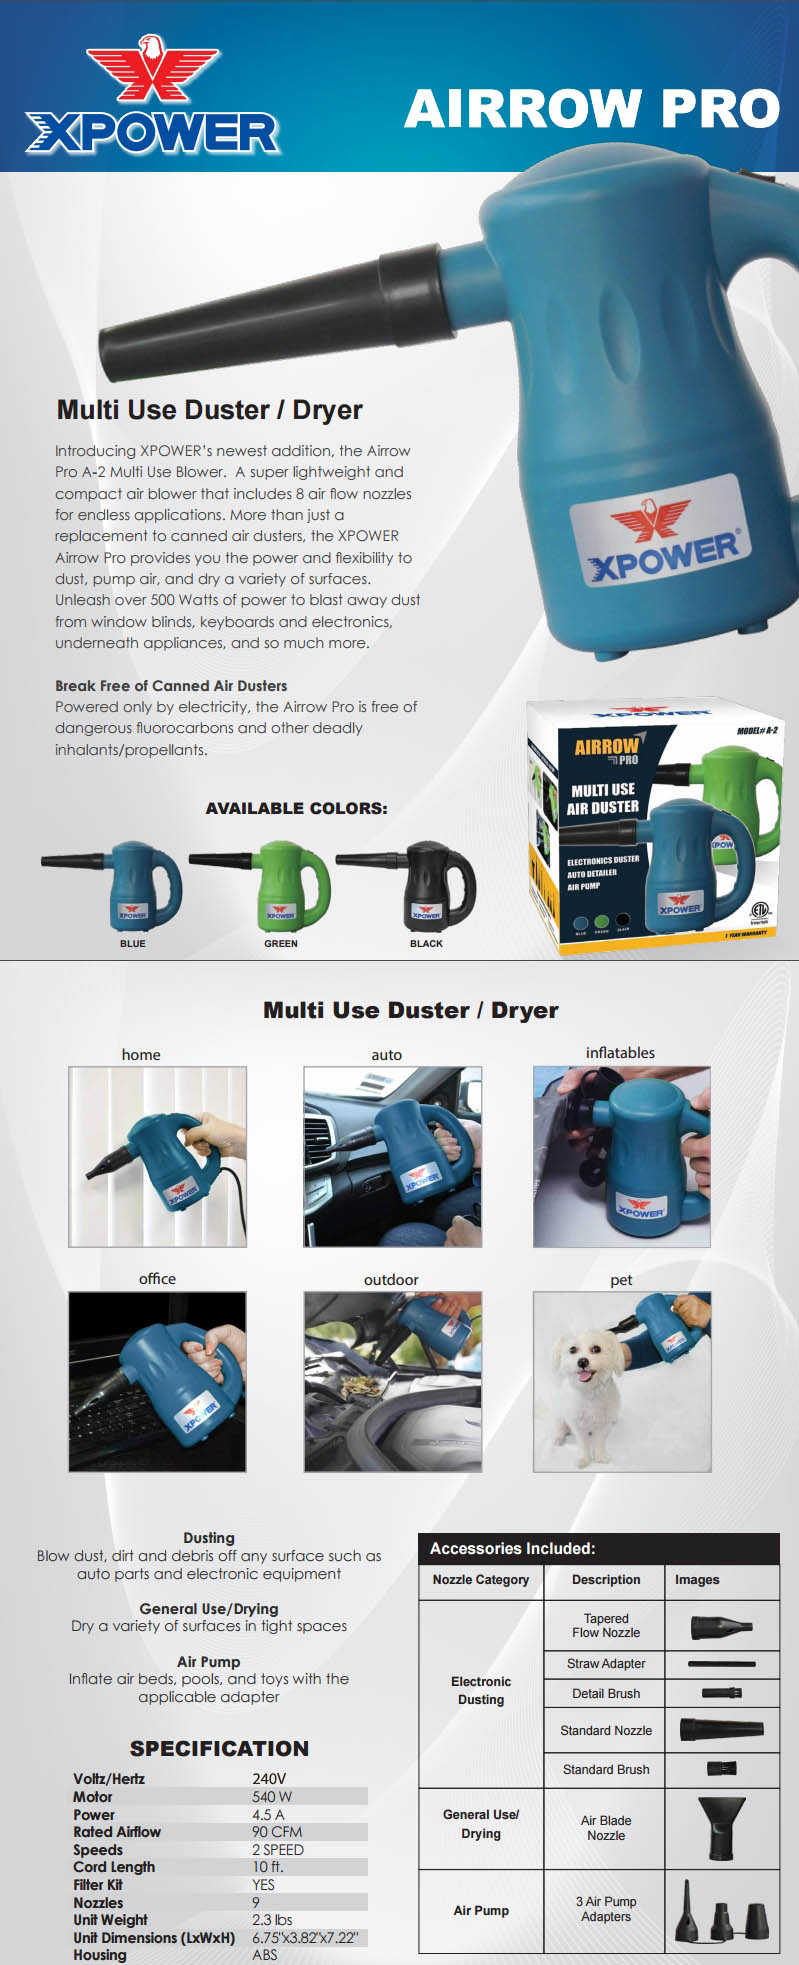 A large marketing image providing additional information about the product XPower Airrow Pro Electric Blower - Black - Additional alt info not provided